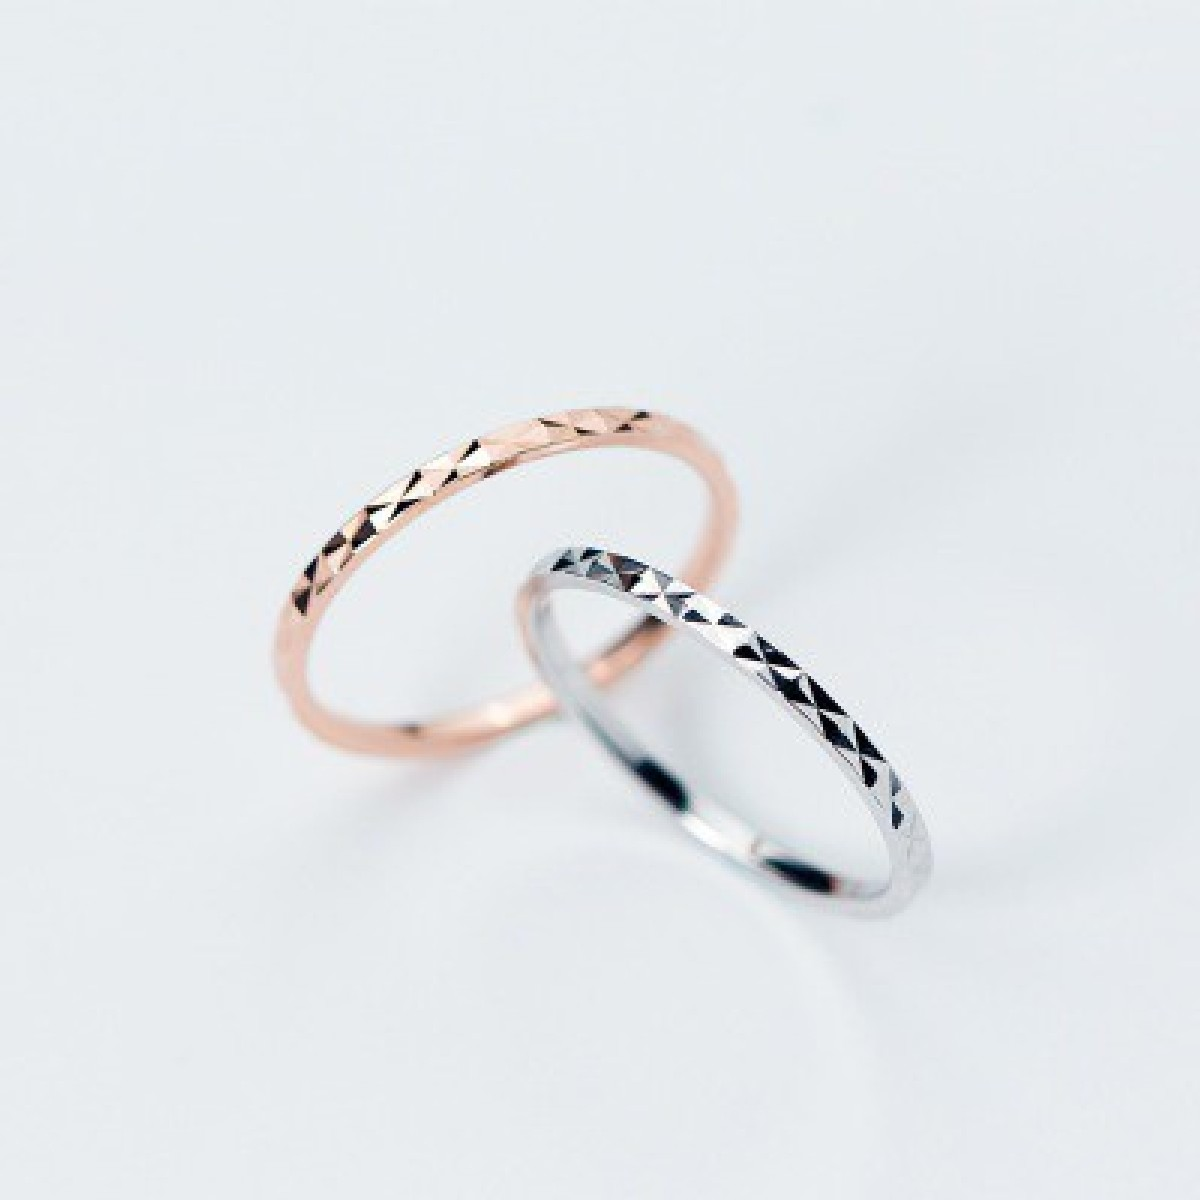 Silver & Golden Stainless Steel Simple Thin Ring Set For Women